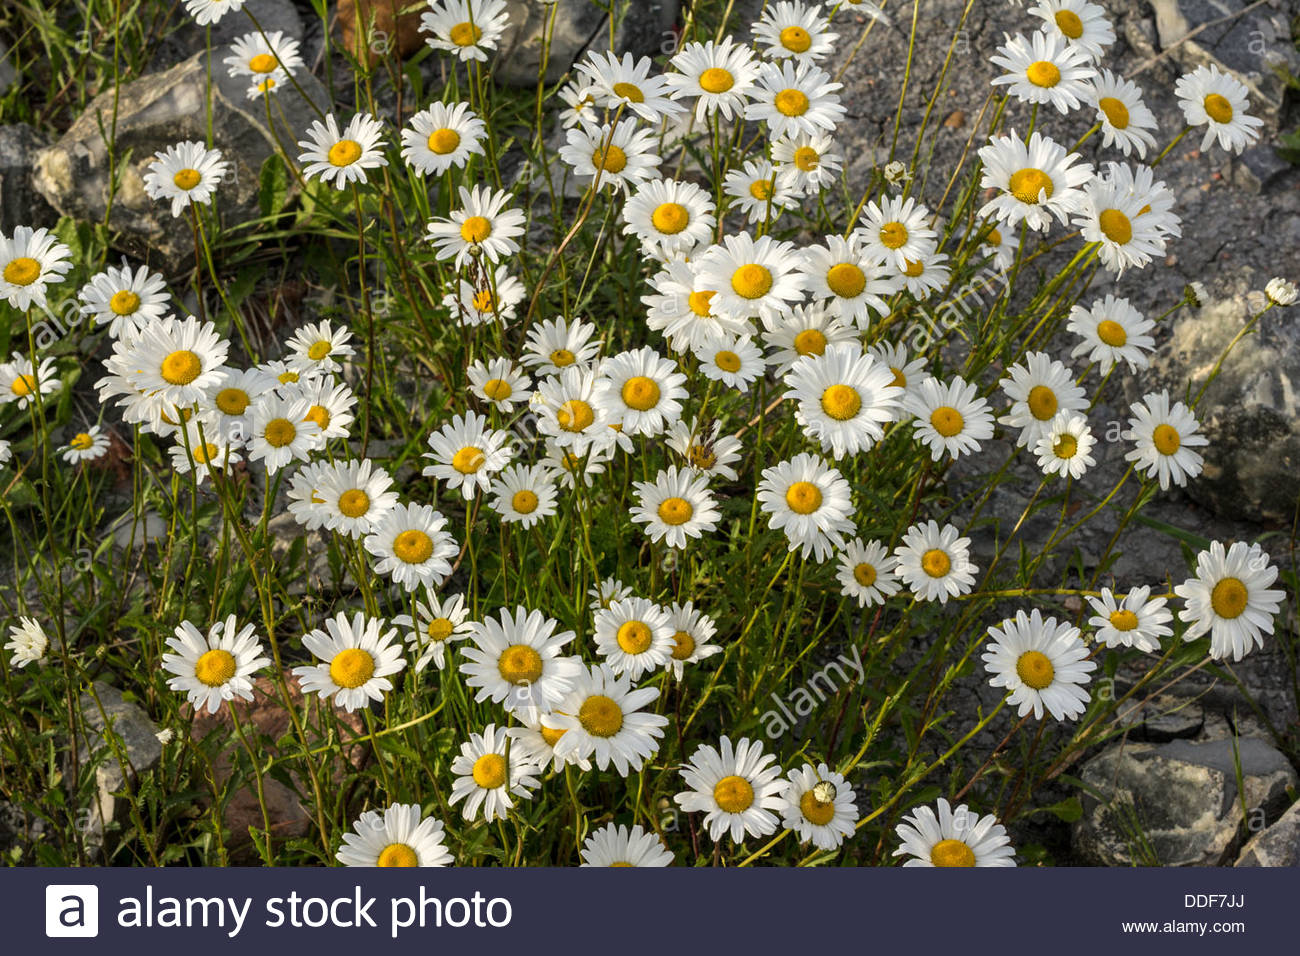 Wildflowers growing on wasteland - Stock Image